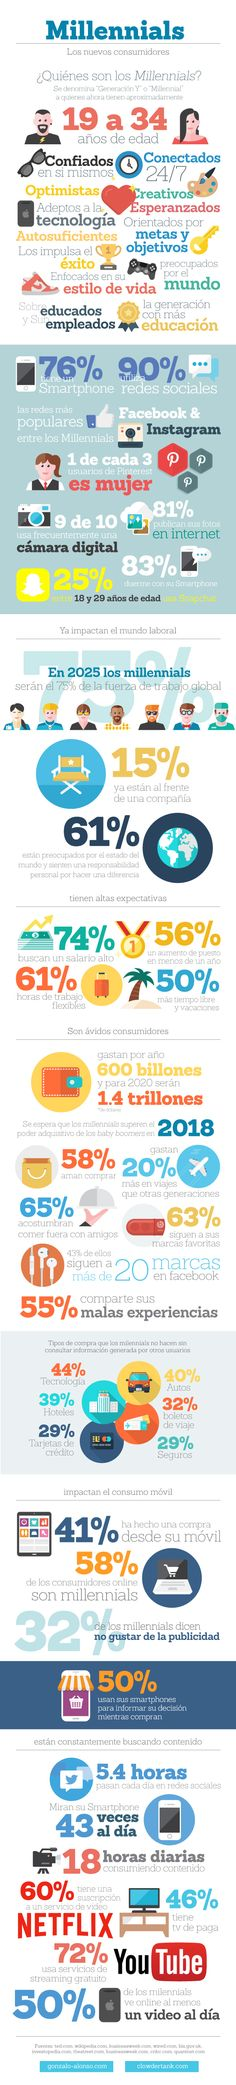 Millenials: los nuevos consumidores #infografia #infographic #marketing